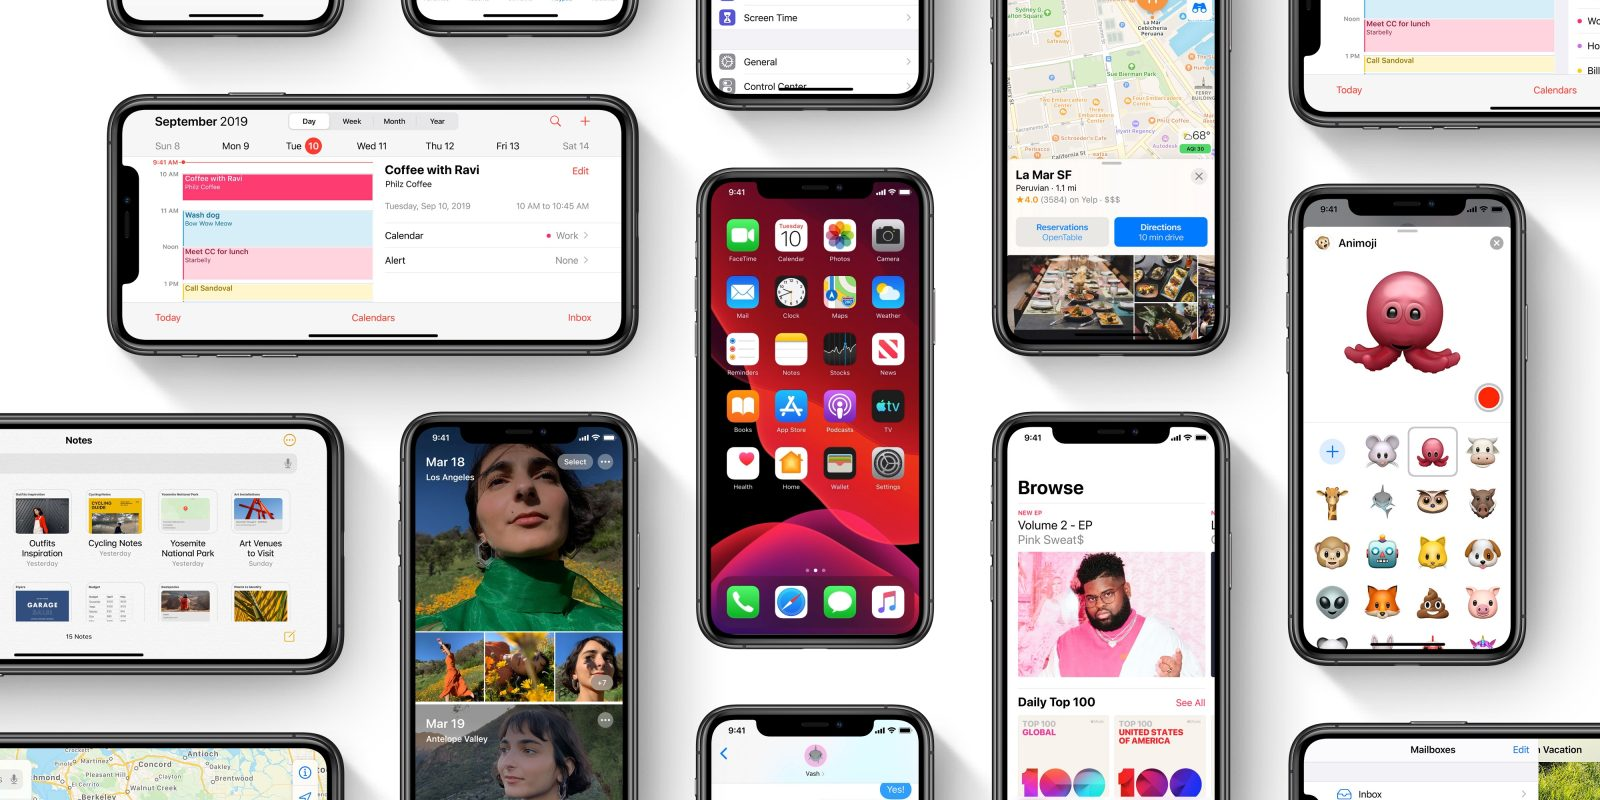 What makes iOS a good mobile operating system?